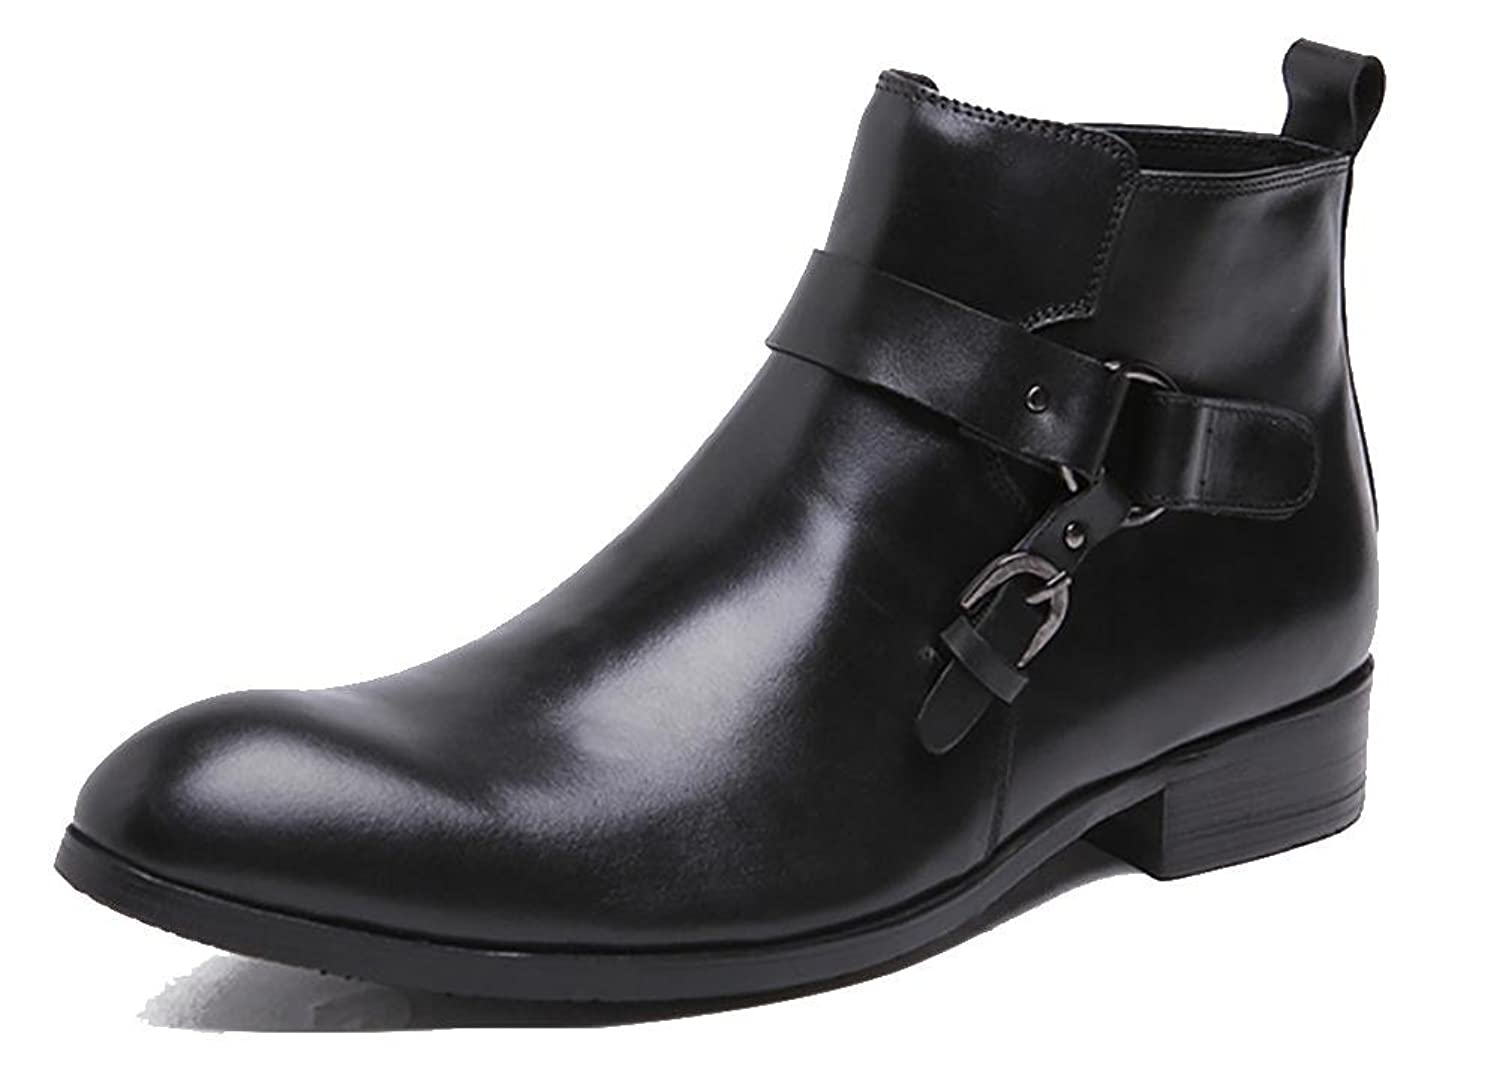 Men 's European Version Of The Leather High Side Zipper Buckle Boots